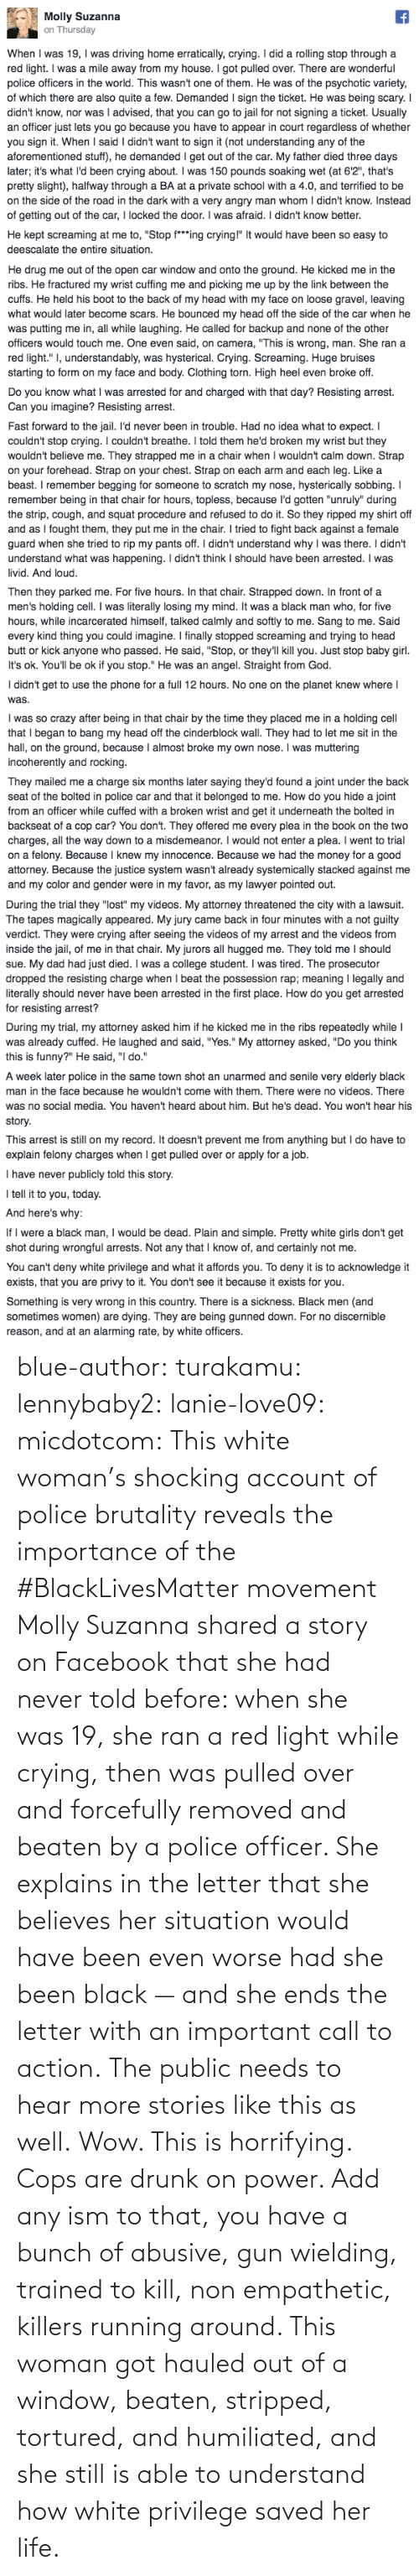 as well: blue-author: turakamu:  lennybaby2:  lanie-love09:  micdotcom:  This white woman's shocking account of police brutality reveals the importance of the #BlackLivesMatter movement Molly Suzanna shared a story on Facebook that she had never told before: when she was 19, she ran a red light while crying, then was pulled over and forcefully removed and beaten by a police officer. She explains in the letter that she believes her situation would have been even worse had she been black — and she ends the letter with an important call to action.  The public needs to hear more stories like this as well.  Wow. This is horrifying.  Cops are drunk on power. Add any ism to that, you have a bunch of abusive, gun wielding, trained to kill, non empathetic, killers running around.    This woman got hauled out of a window, beaten, stripped, tortured, and humiliated, and she still is able to understand how white privilege saved her life.